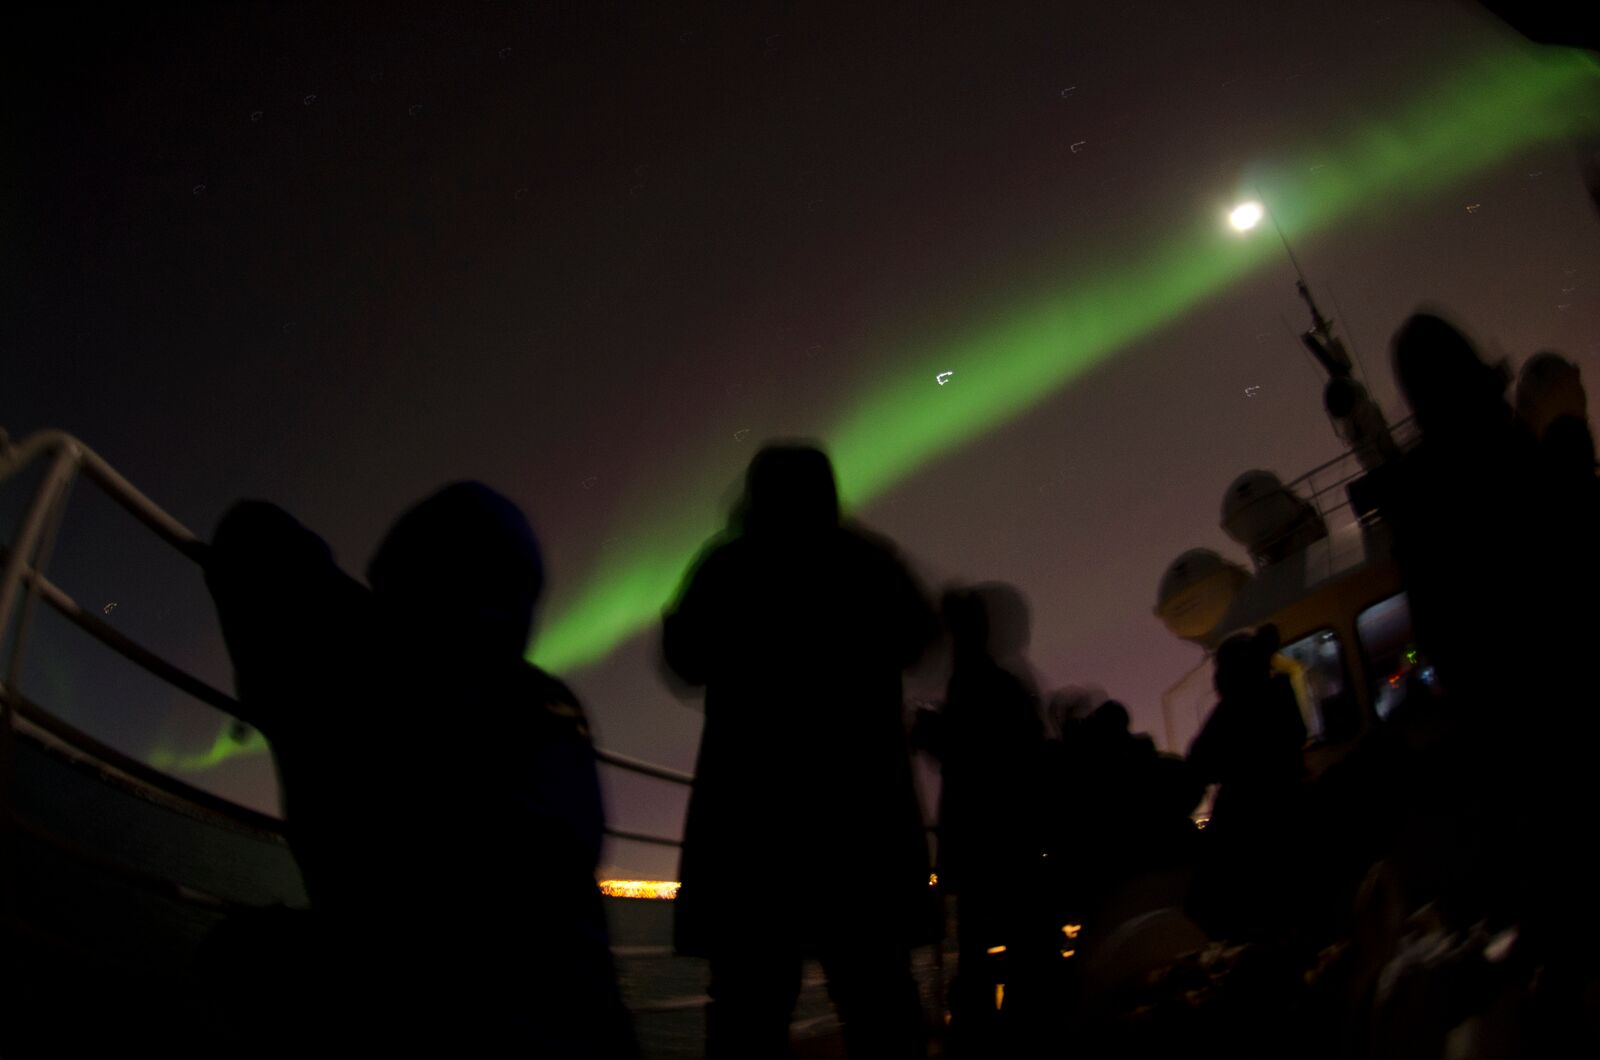 Seeing the Northern Lights by boat allows guests to totally avoid the city's light pollution.